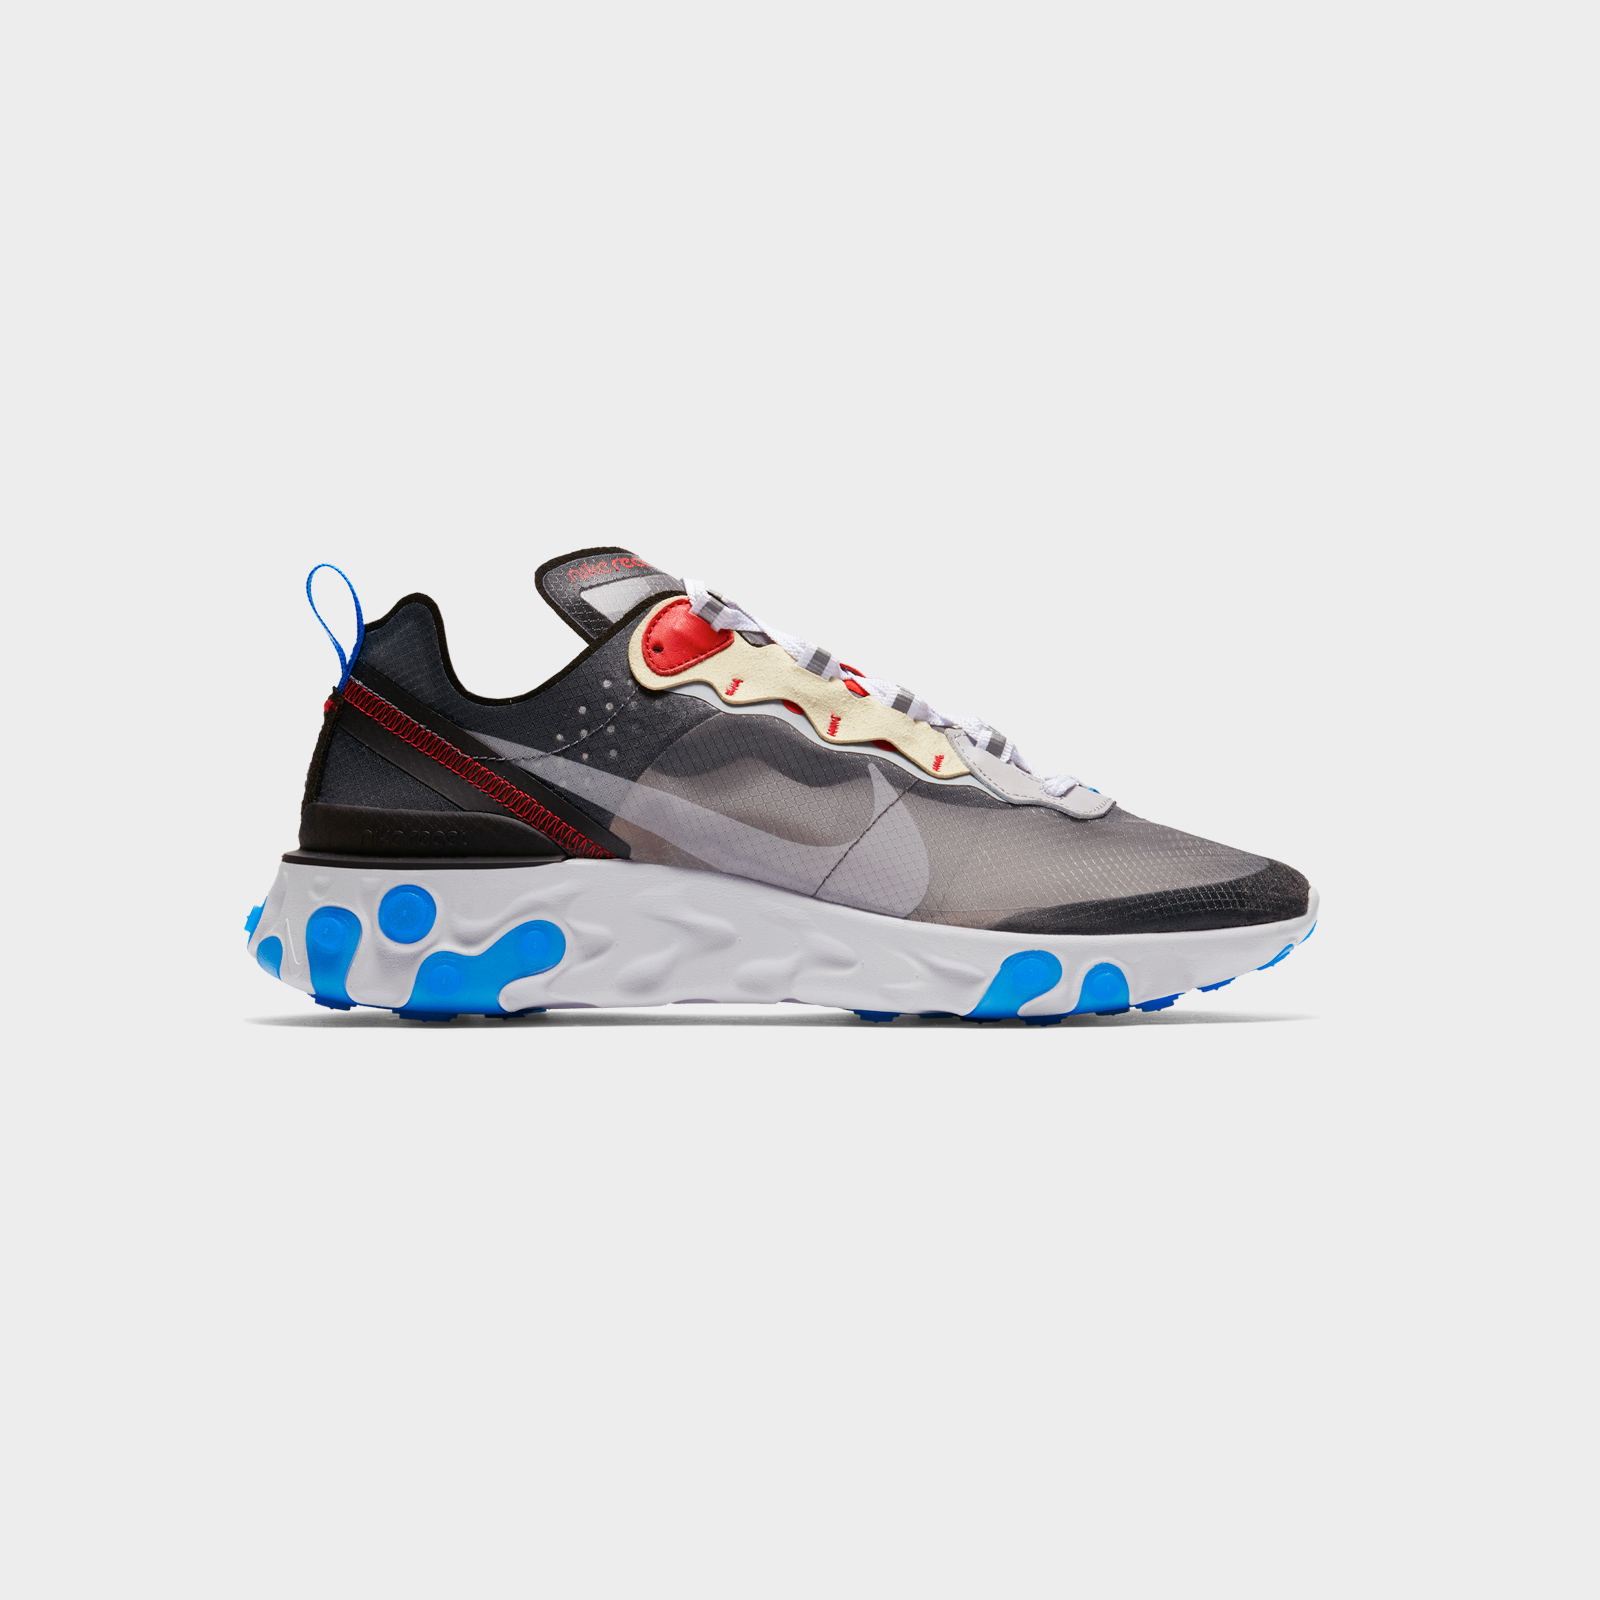 bd43a892acc28 Nike React Element 87 - Aq1090-003 - Sneakersnstuff